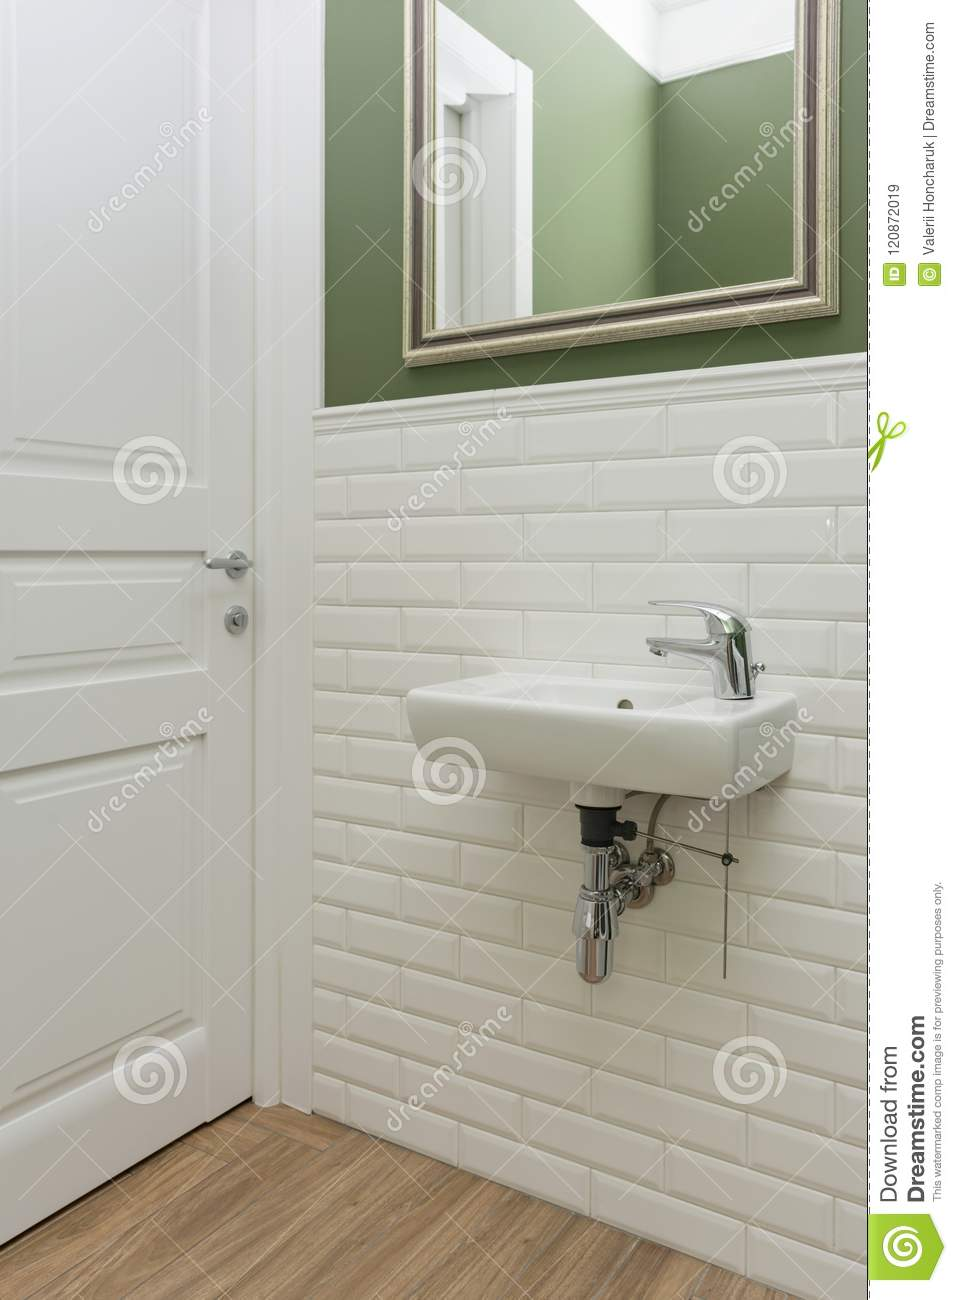 Bathroom, Toilet Room Interior Close-up. The Walls Are Painted Green ...